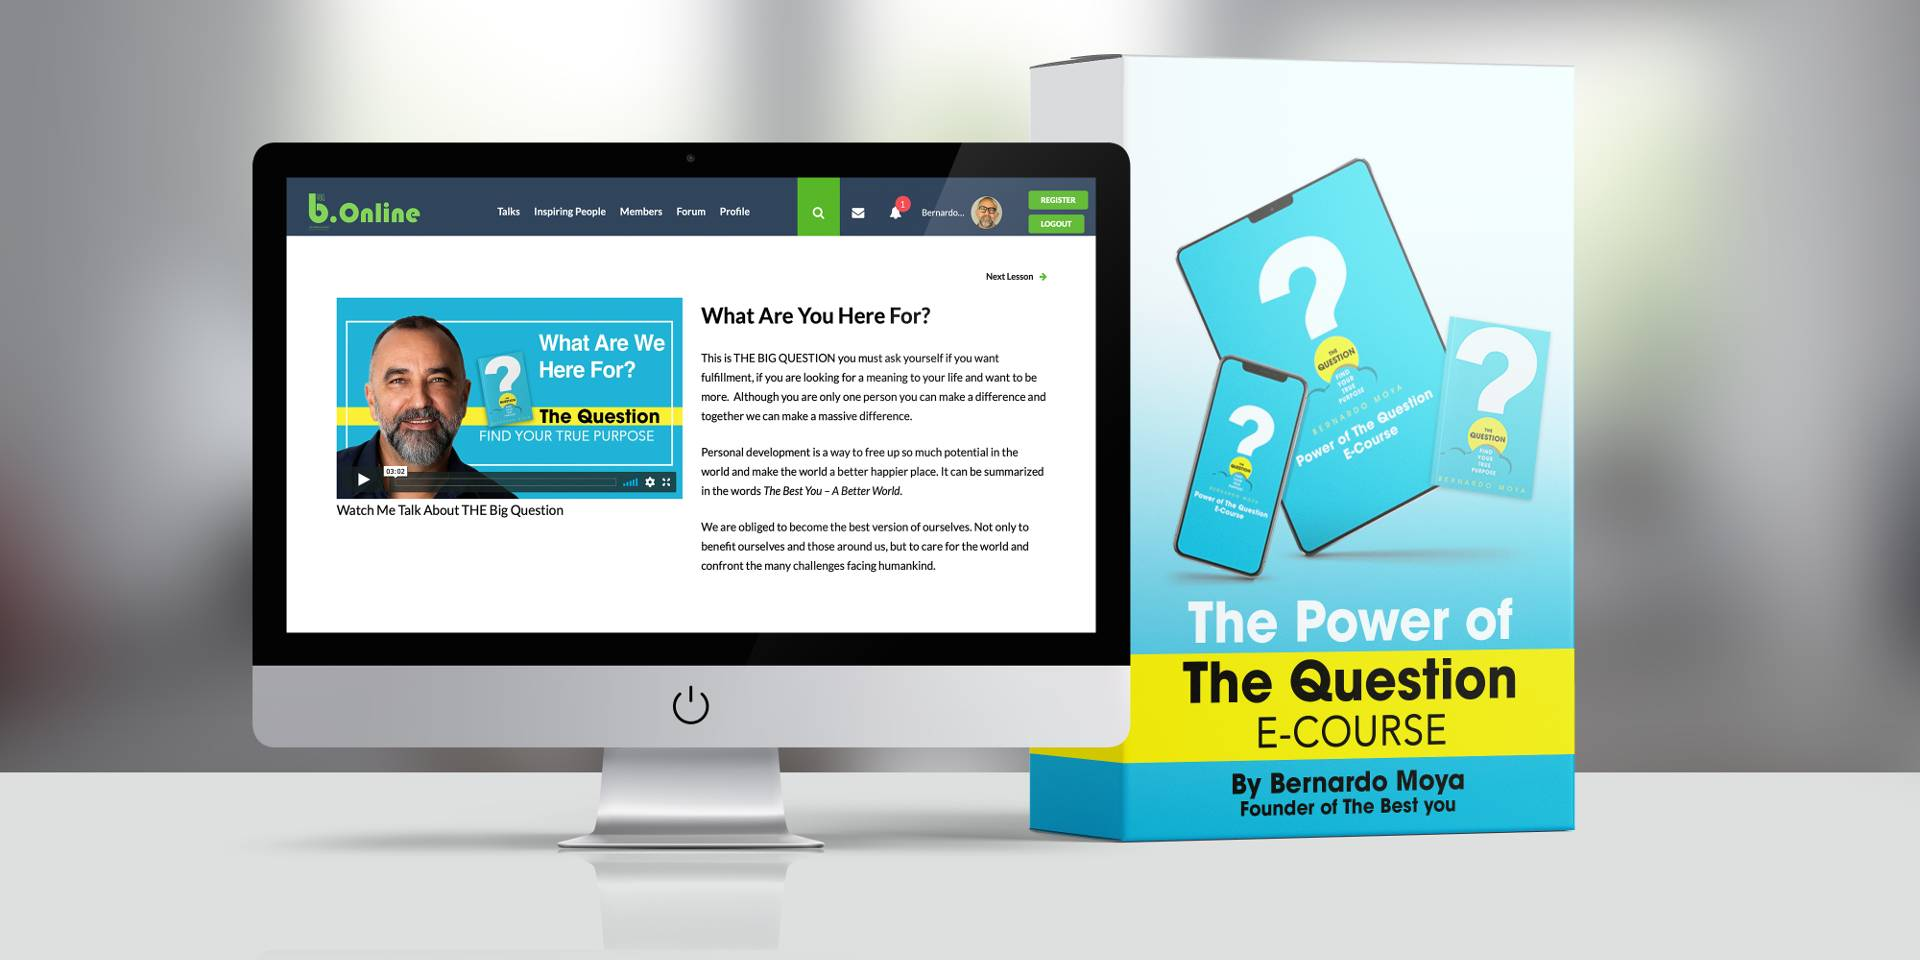 The Power of the Question E-course